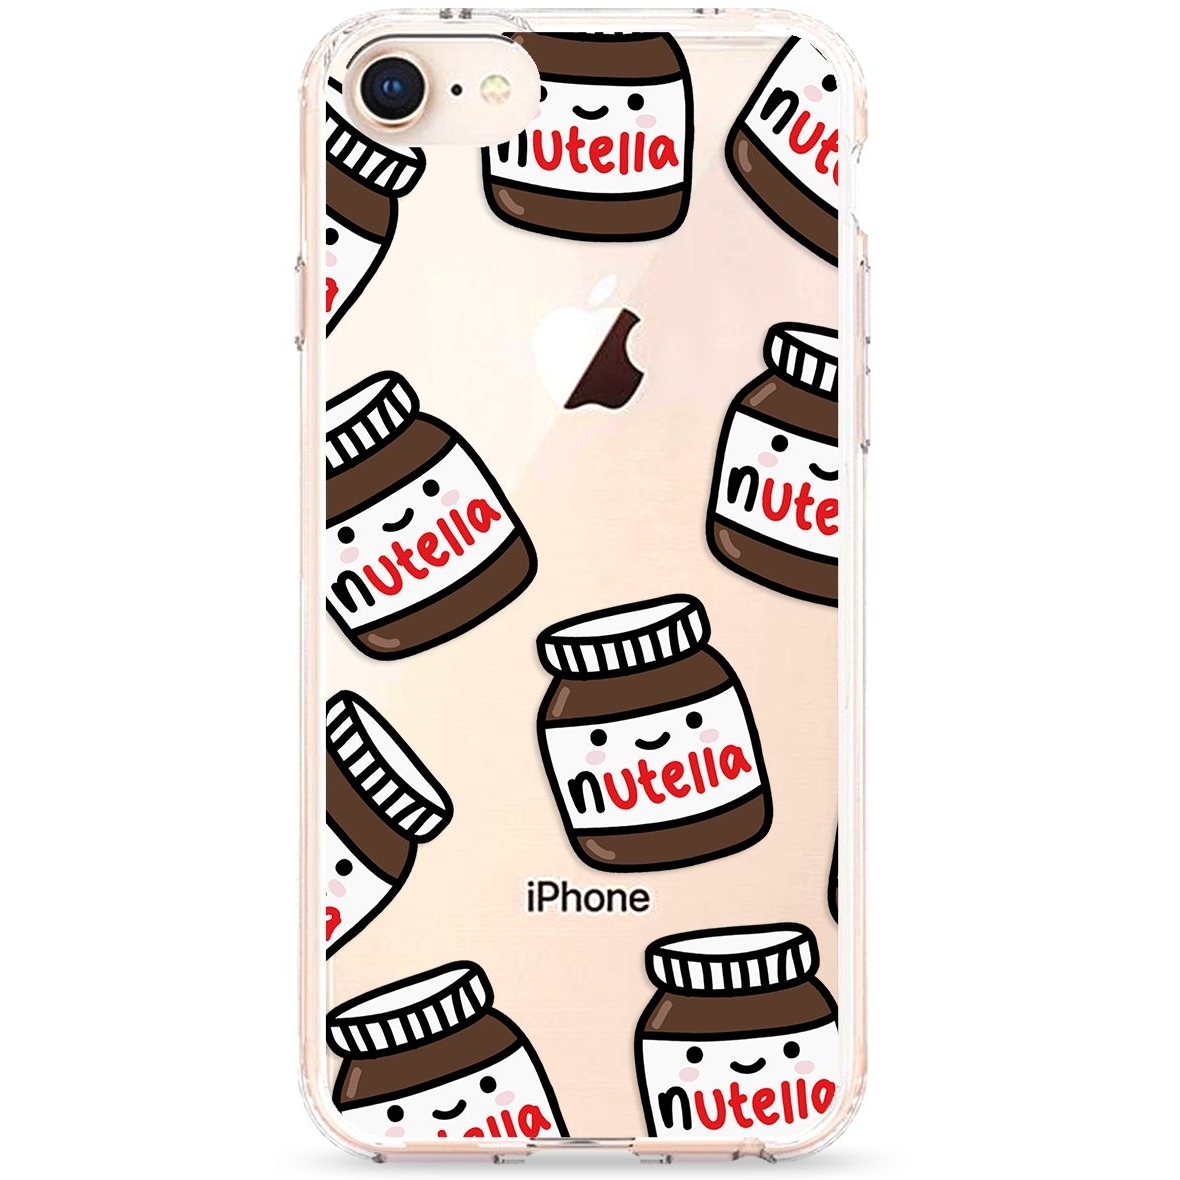 Neutella Apple iPhone 7 / Apple iPhone 8 Case(Multi Color)